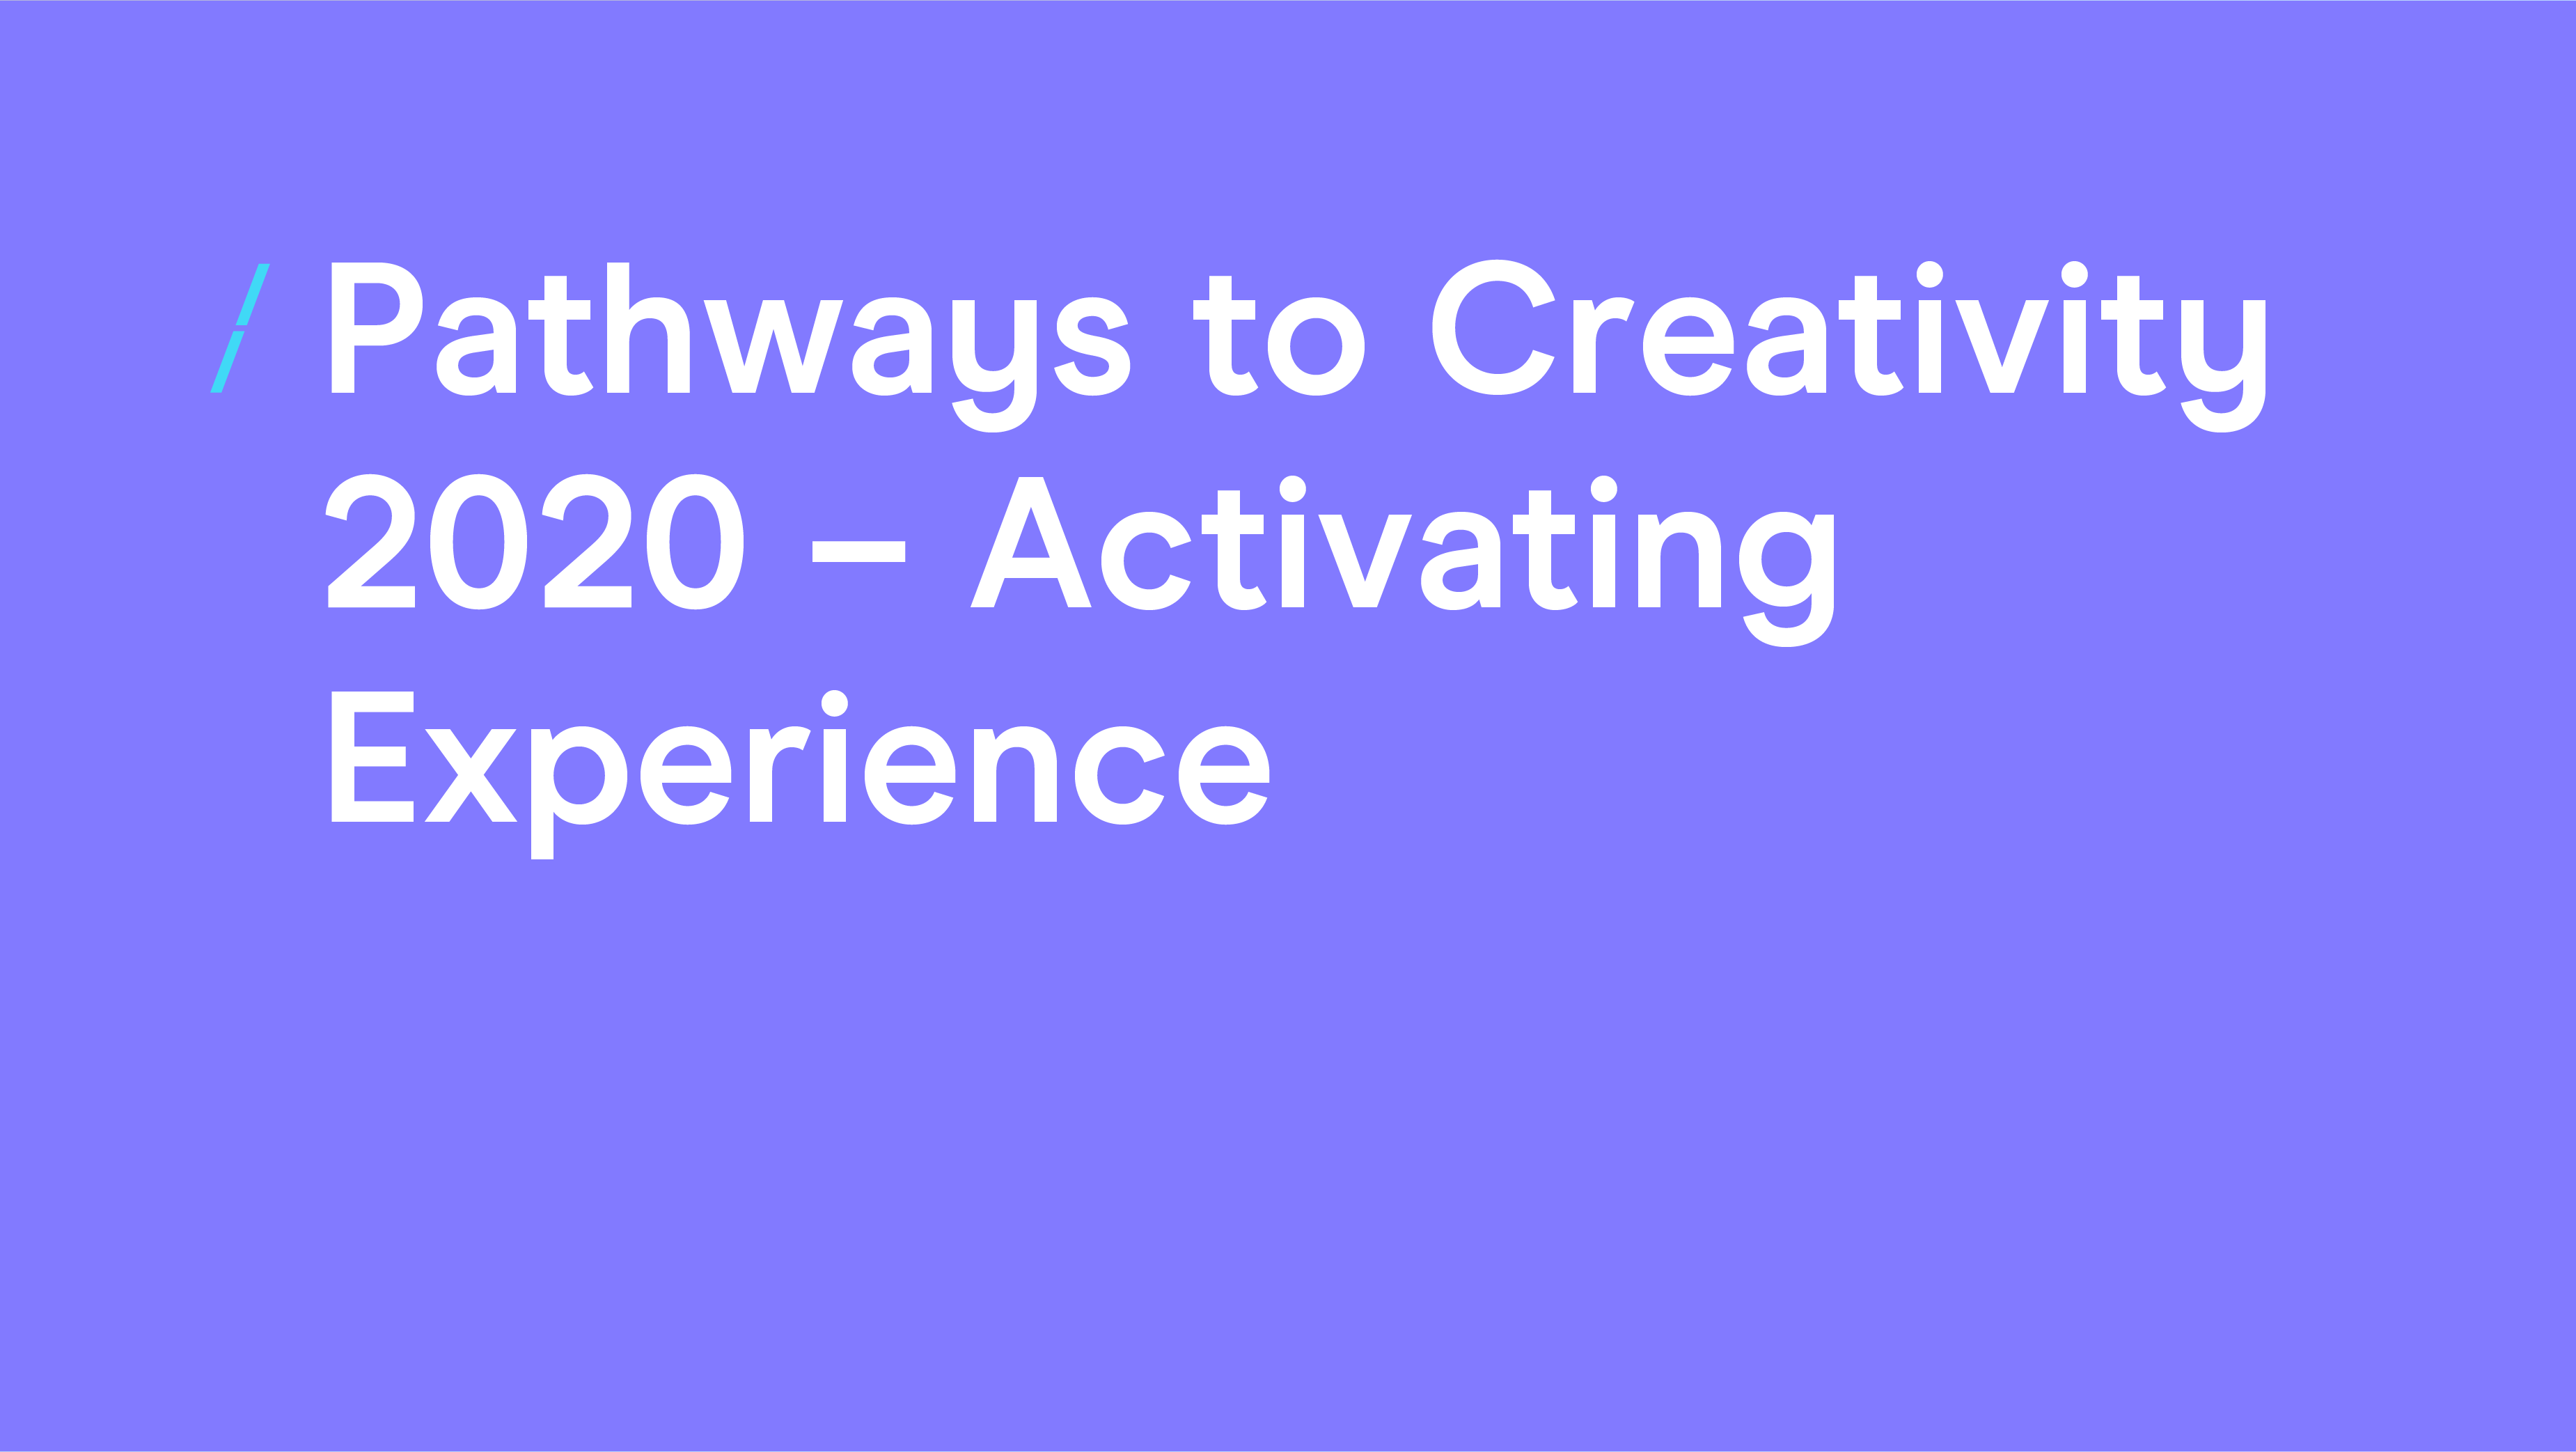 Pathways to Creativity 2020 - Activating Experience.png